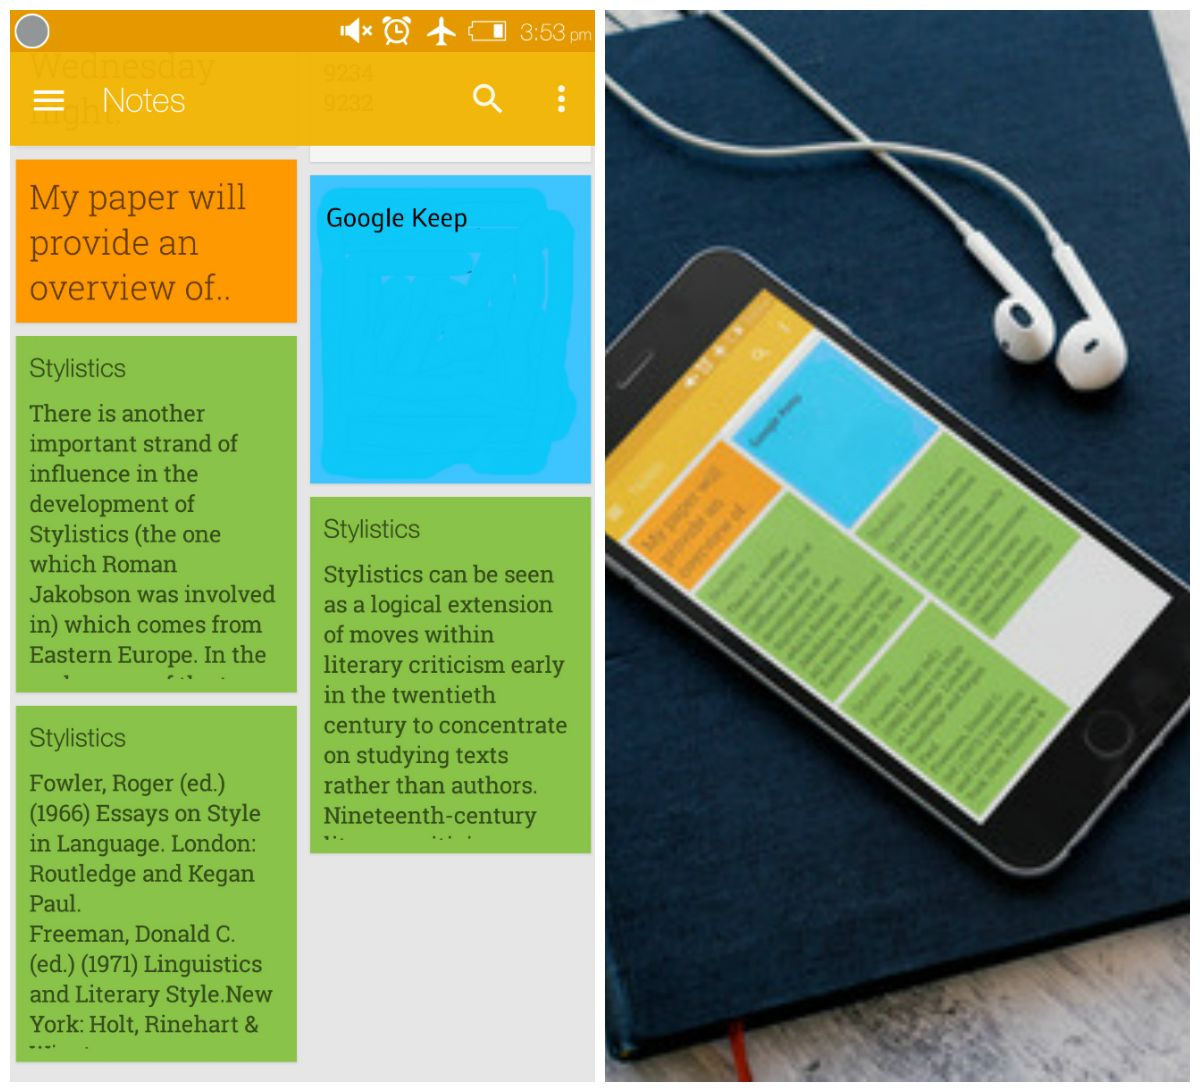 Google Keep in Education